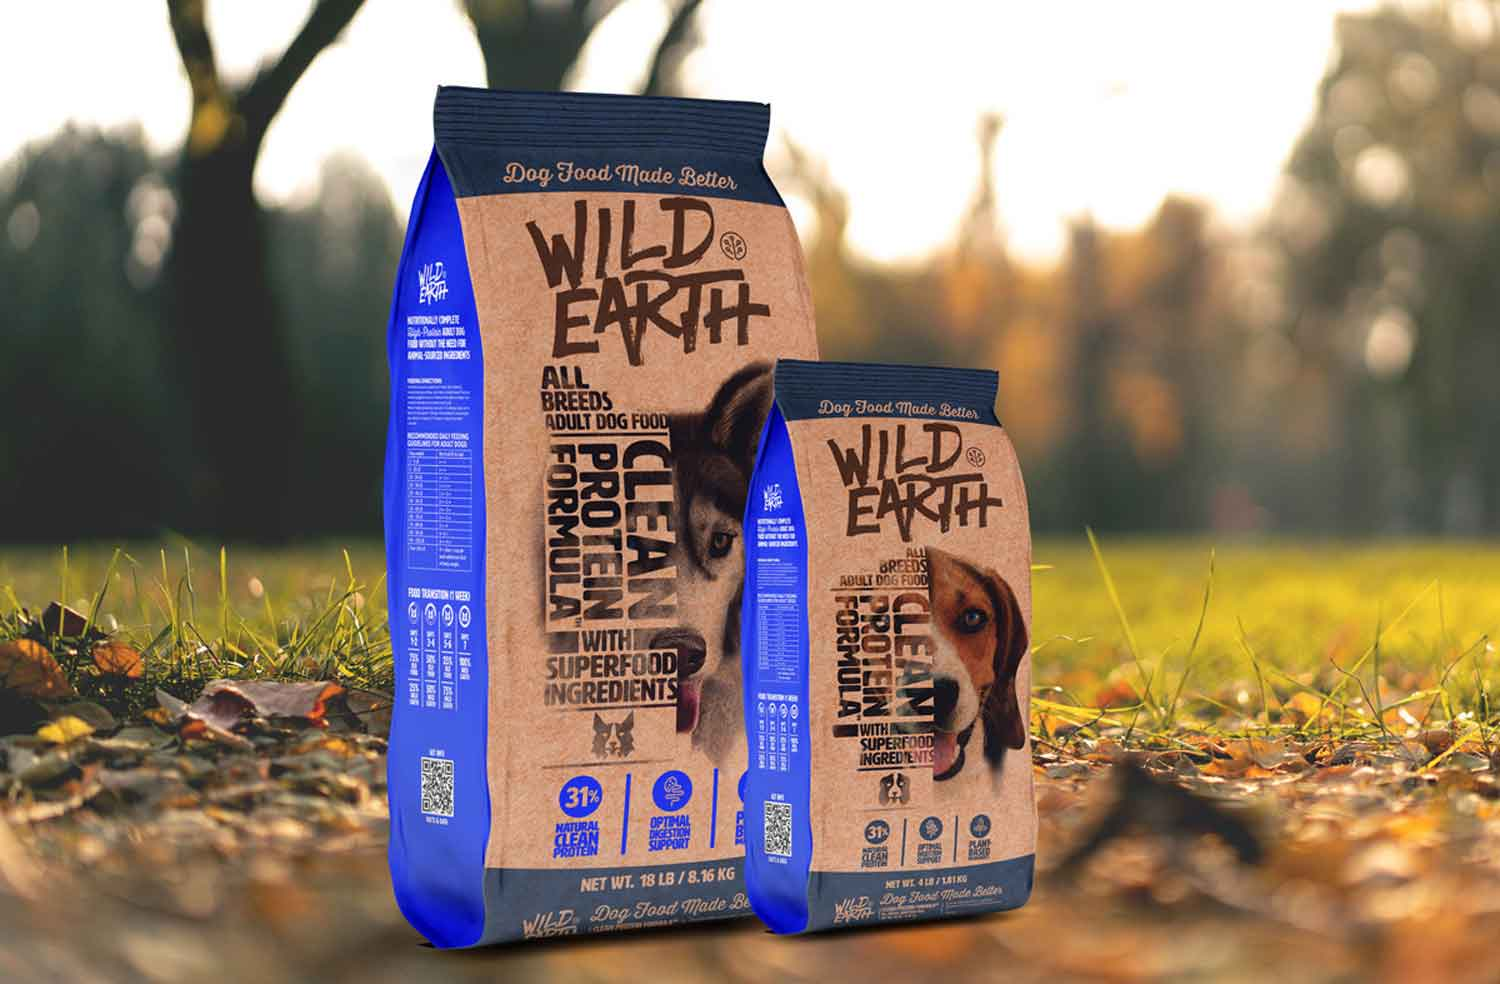 Startup launches high-protein, meat-free dog food